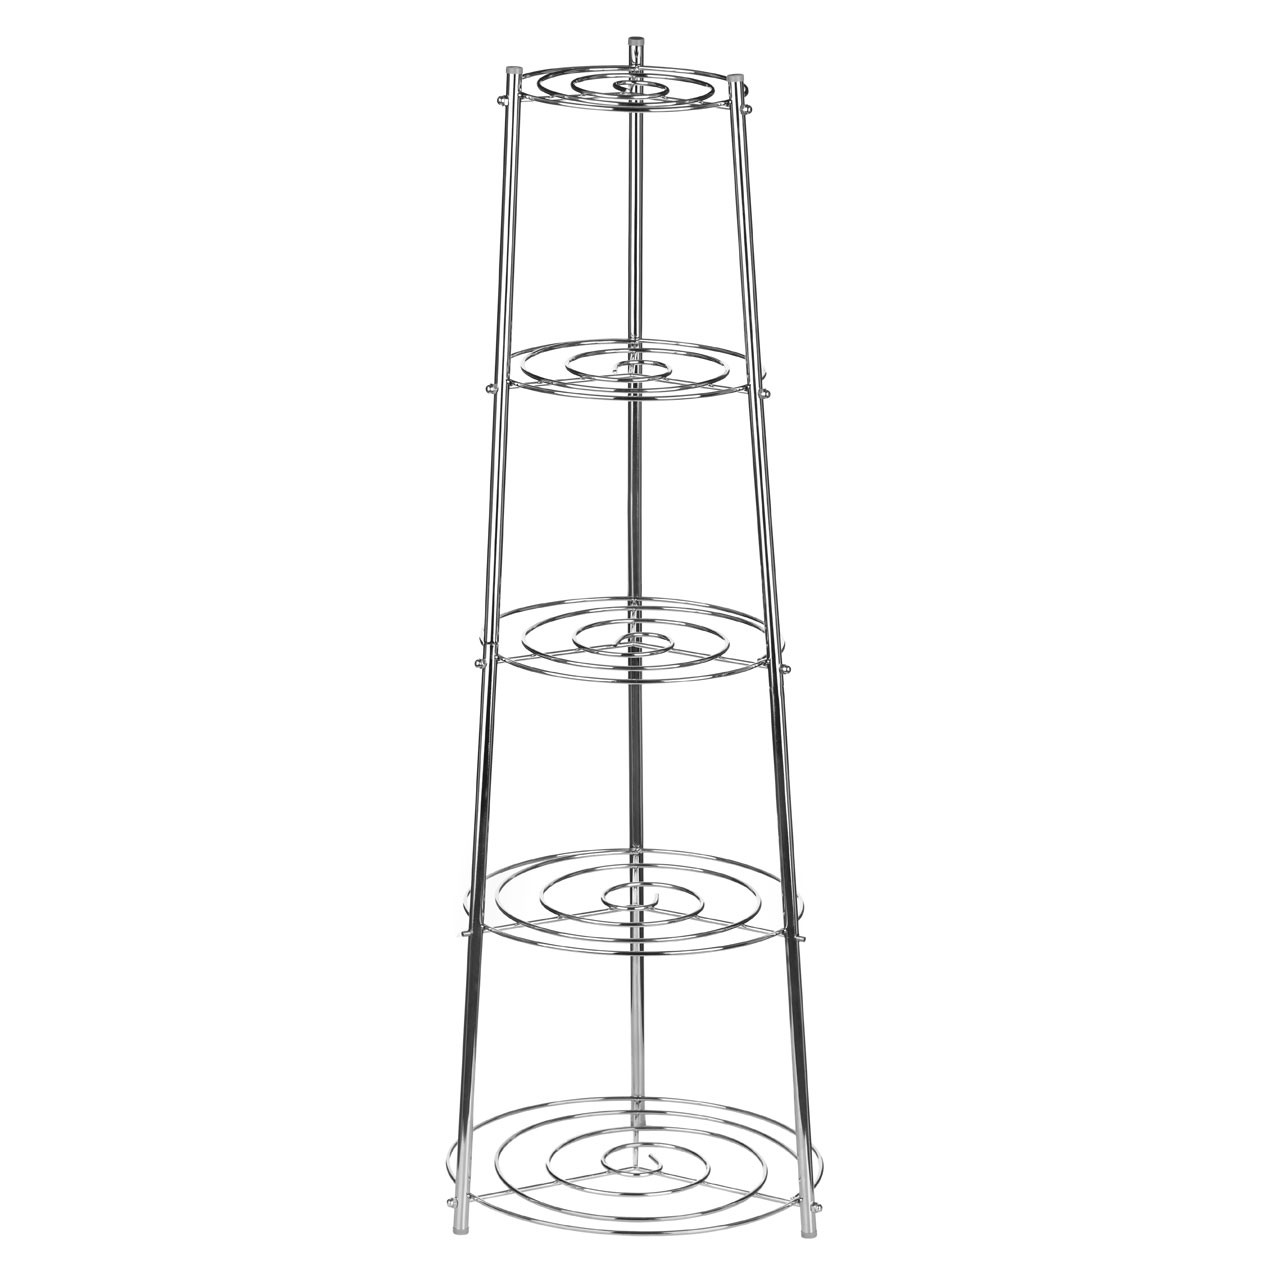 5-Tier Pan Stand - Chrome